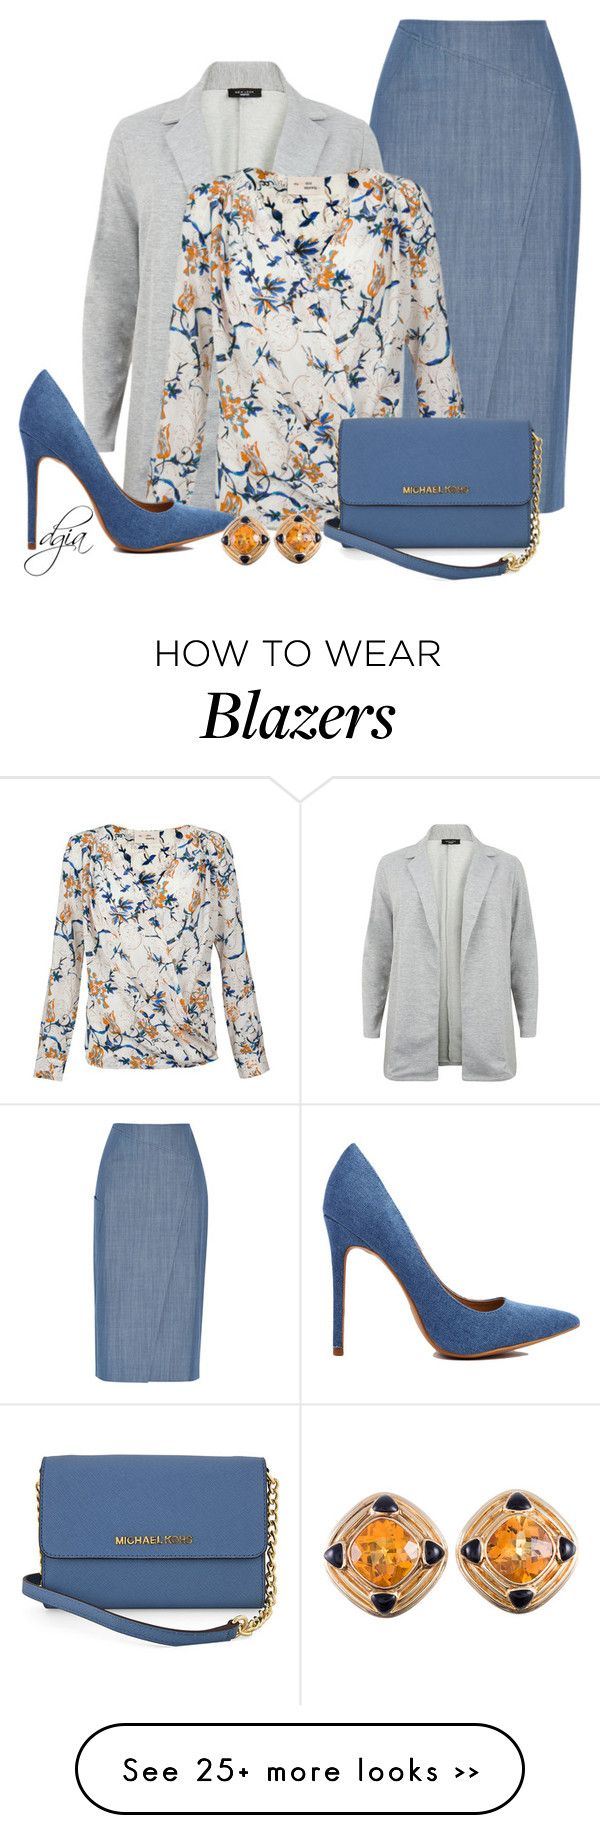 """""""Denim Skirt & Blazer"""" by dgia on Polyvore featuring TIBI and Michael Kors"""